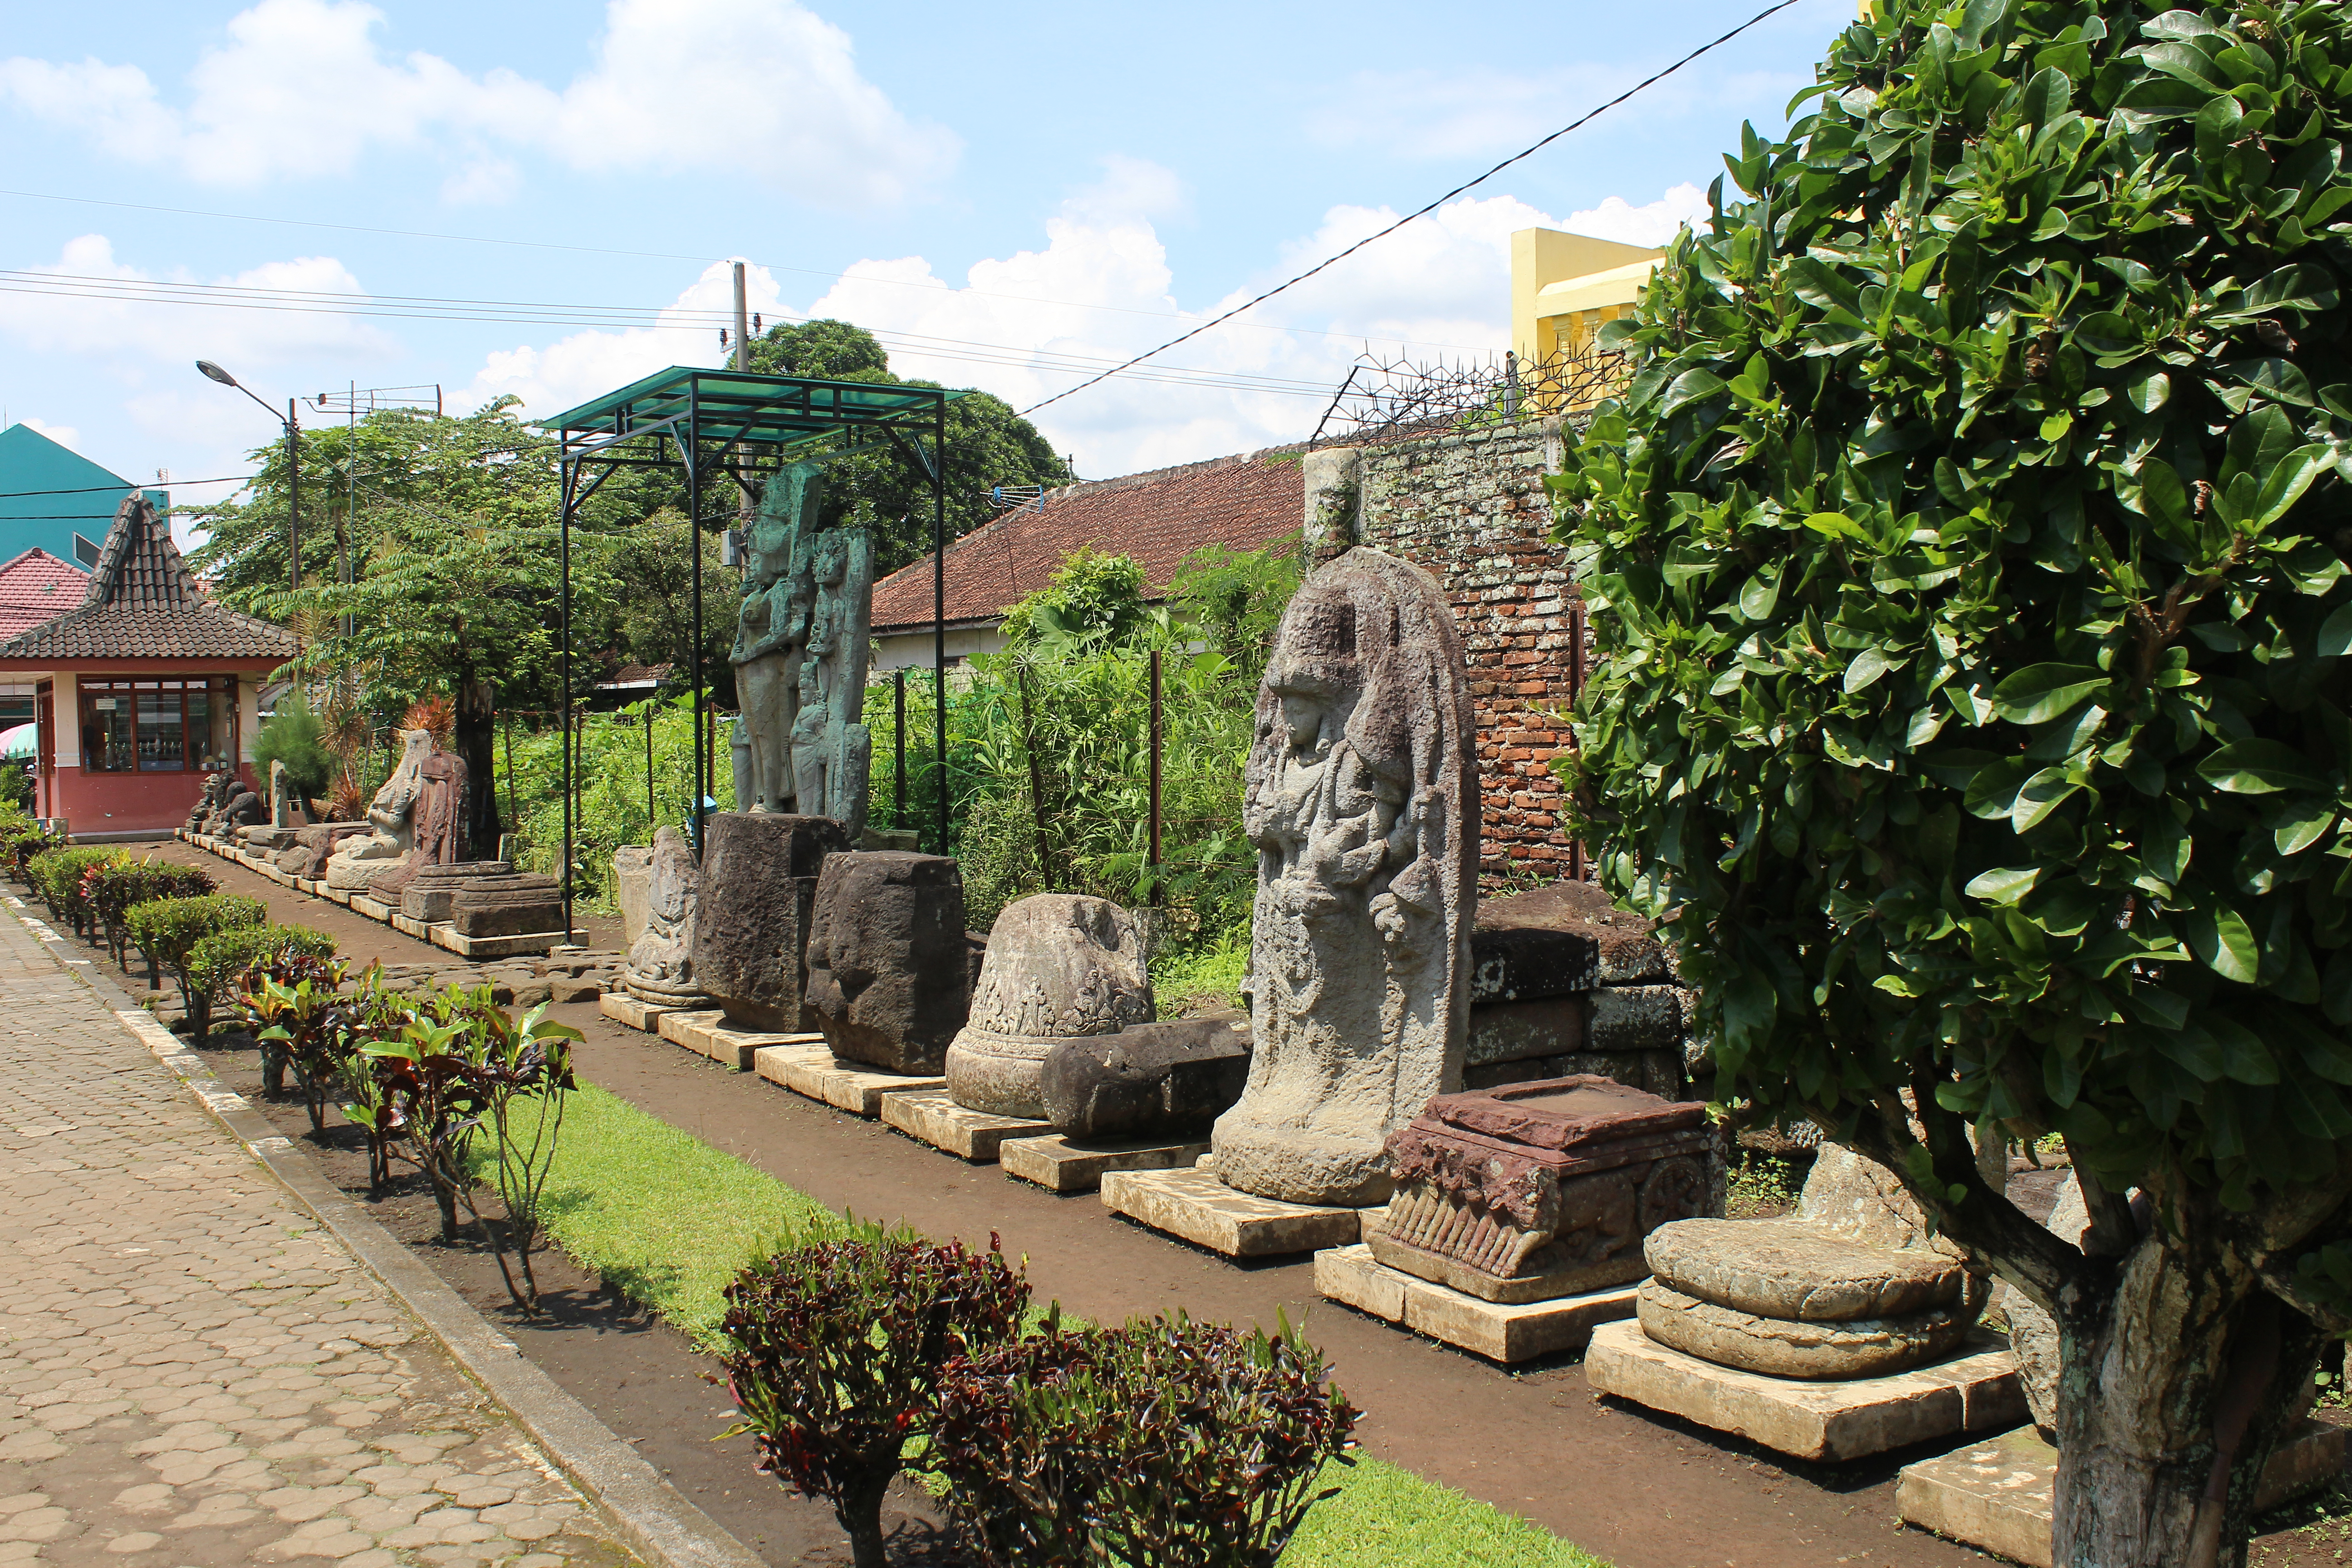 Stone statues in a line